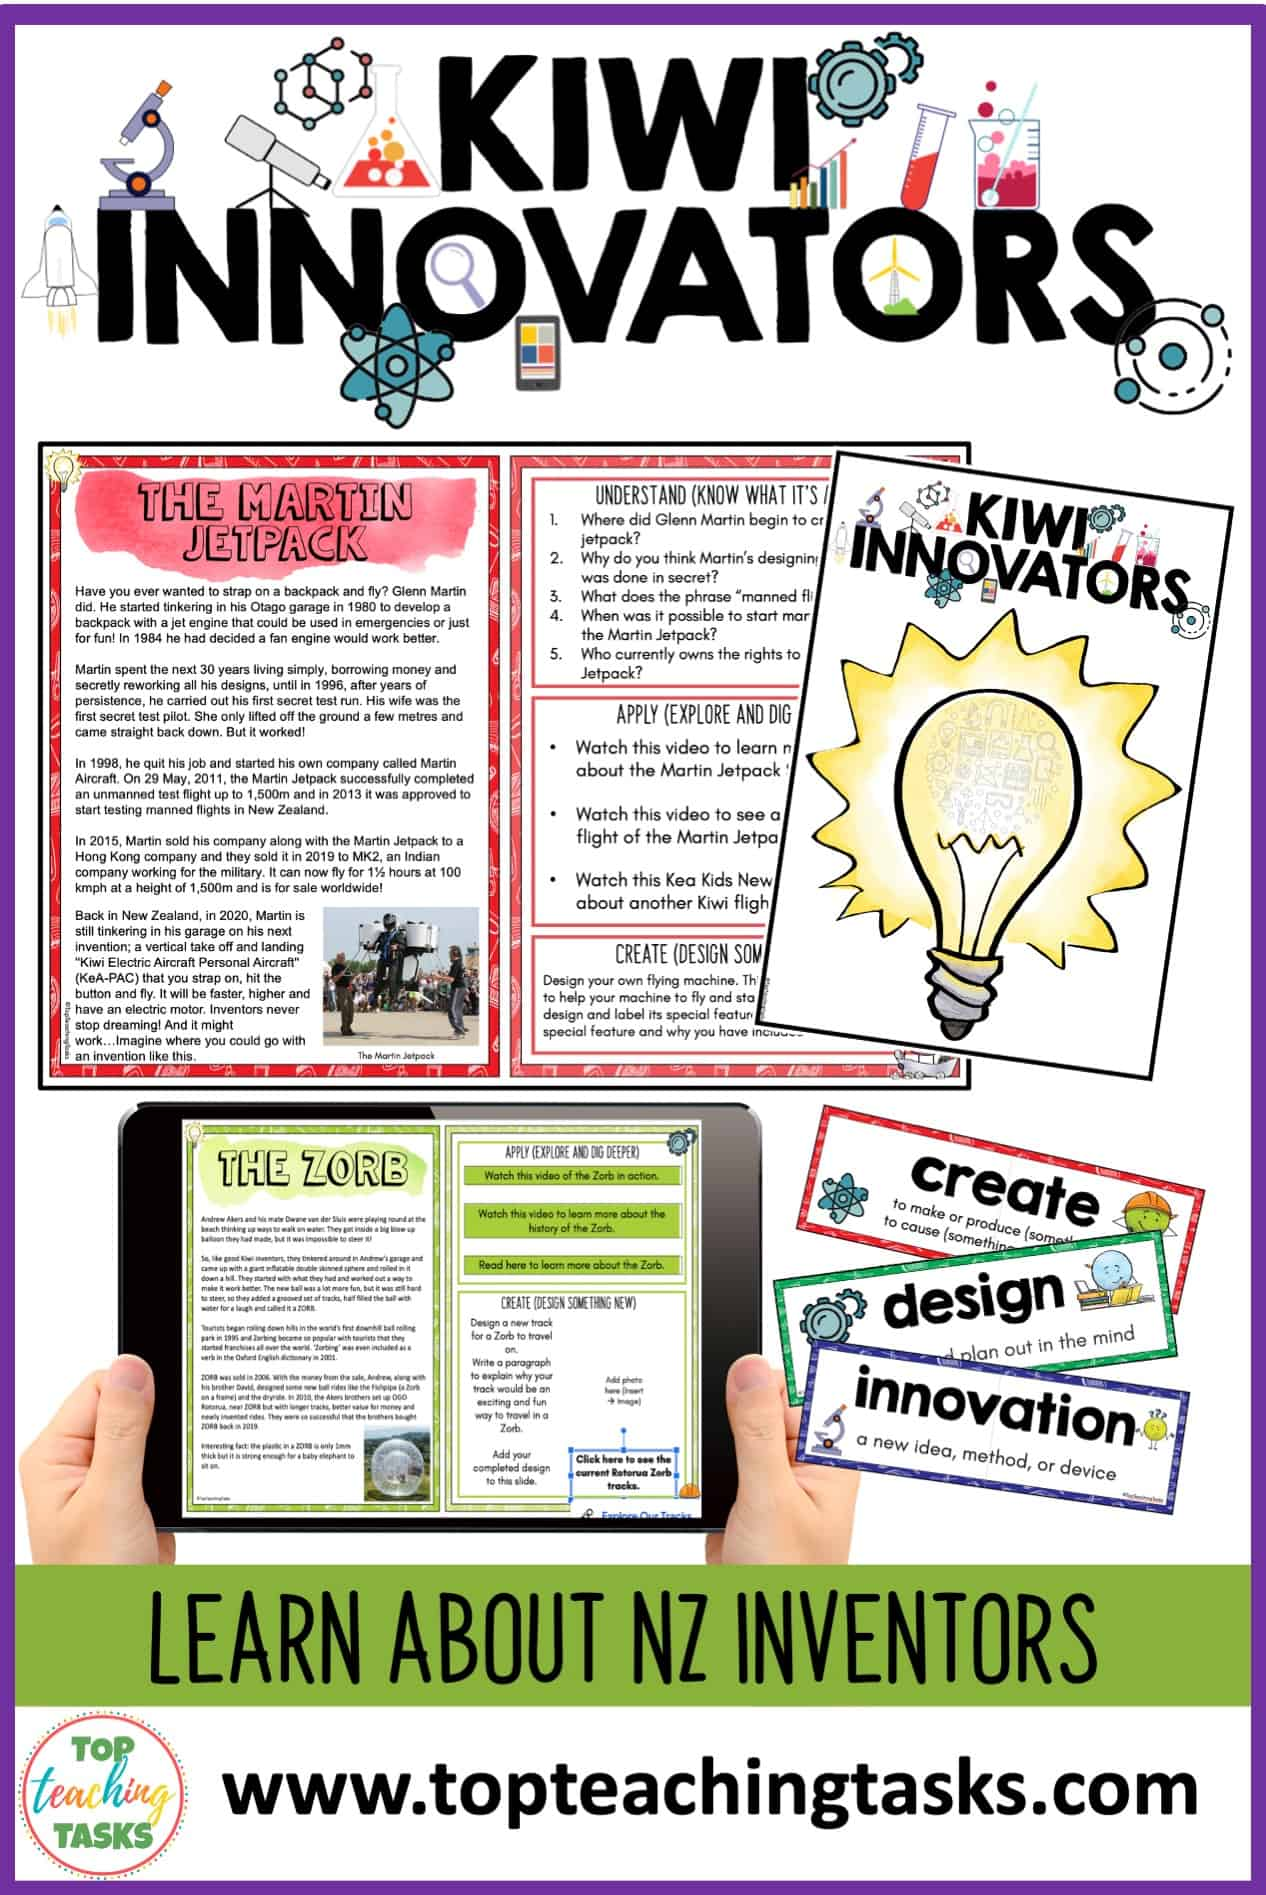 Kiwi Innovators Unit. Explore some of the fascinating Kiwi innovators and inventions that have been created in New Zealand's history. In this Kiwi Innovators unit, students will learn about 24 Kiwi innovators and their creative ideas, apply this knowledge by exploring digital links, and put their own design skills to the test with creative challenges.